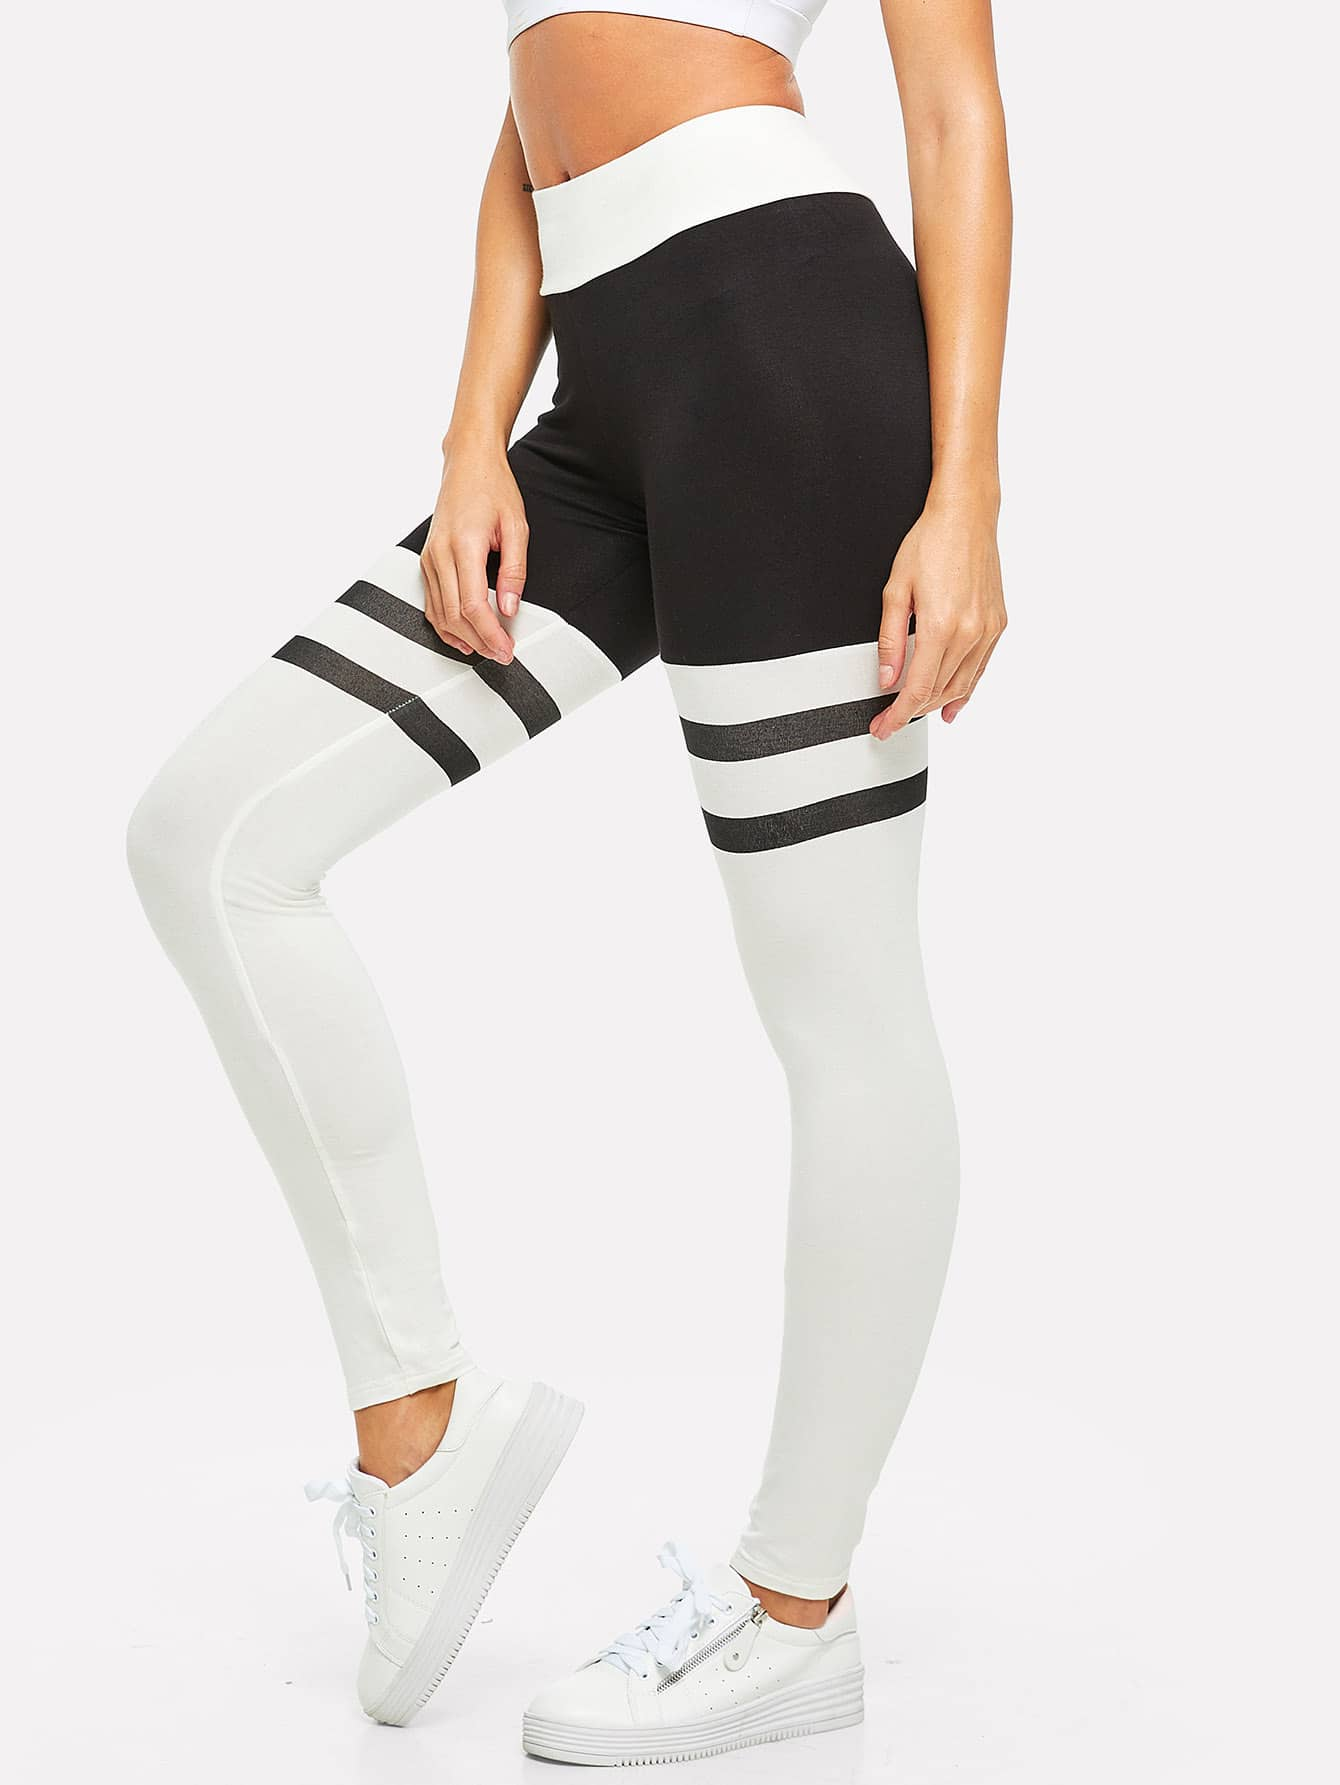 Two Tone Striped Leggings полотенце для ванной two tone grafik quelle quelle 239974